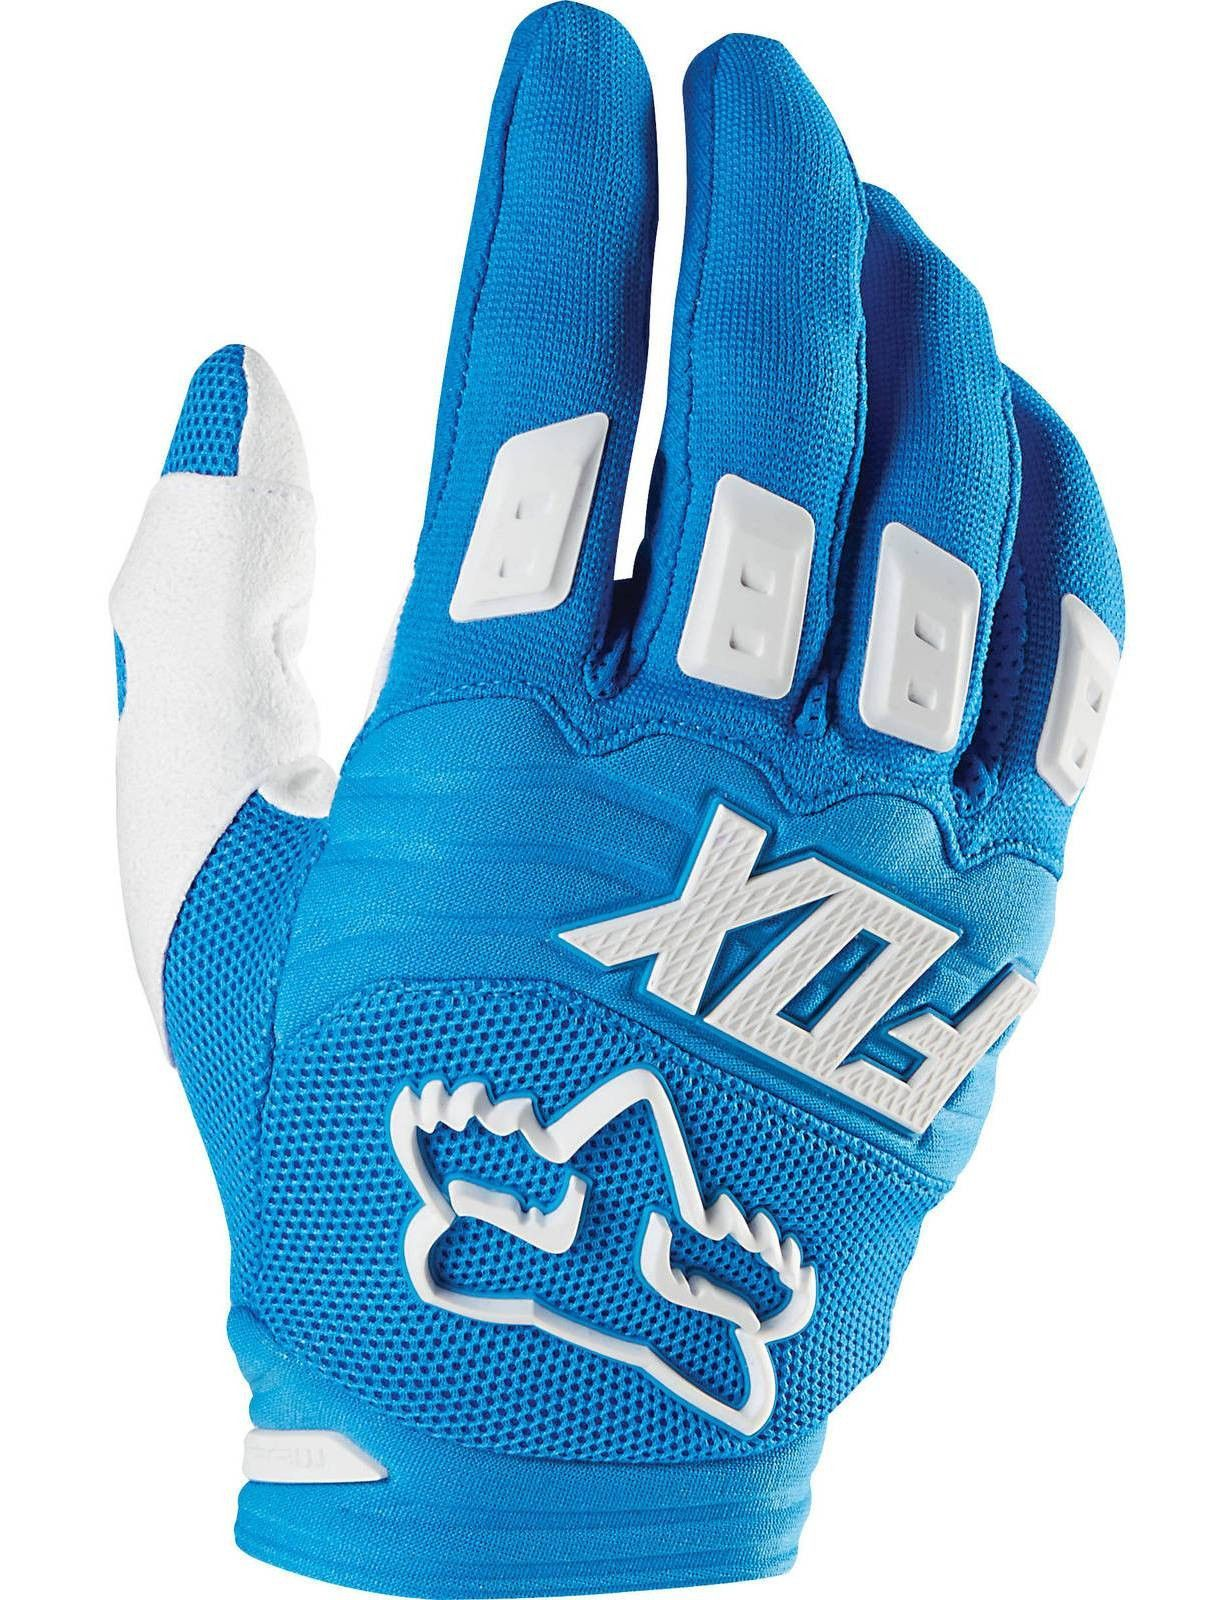 Motorcycle gloves to prevent numbness - Fox Dirtpaw Gloves For Mtb Bmx Mx Pair